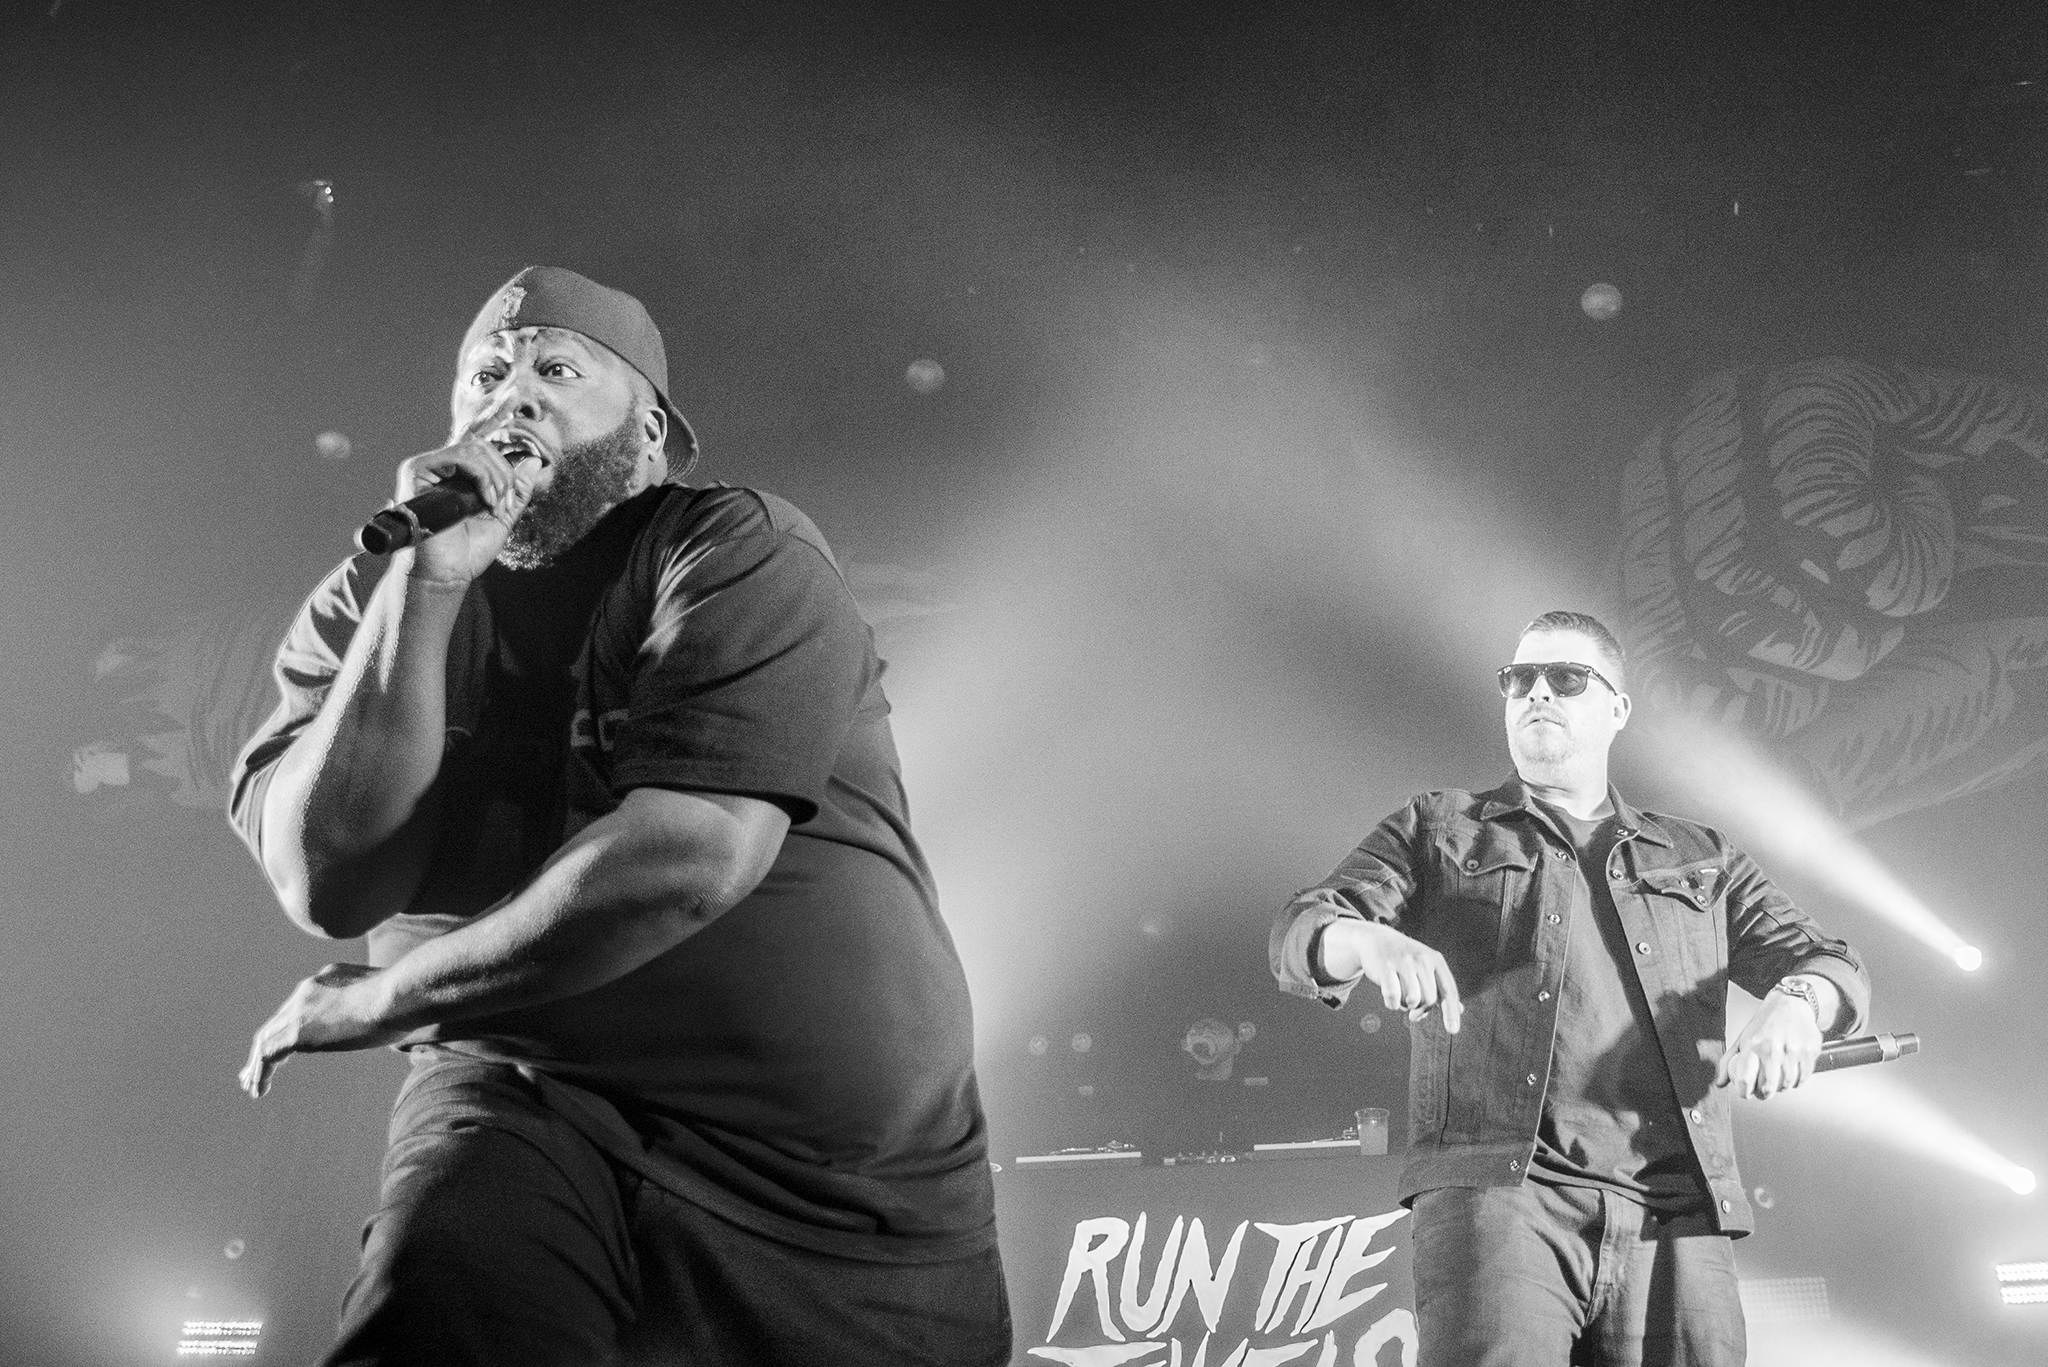 RTJ Dublin photos